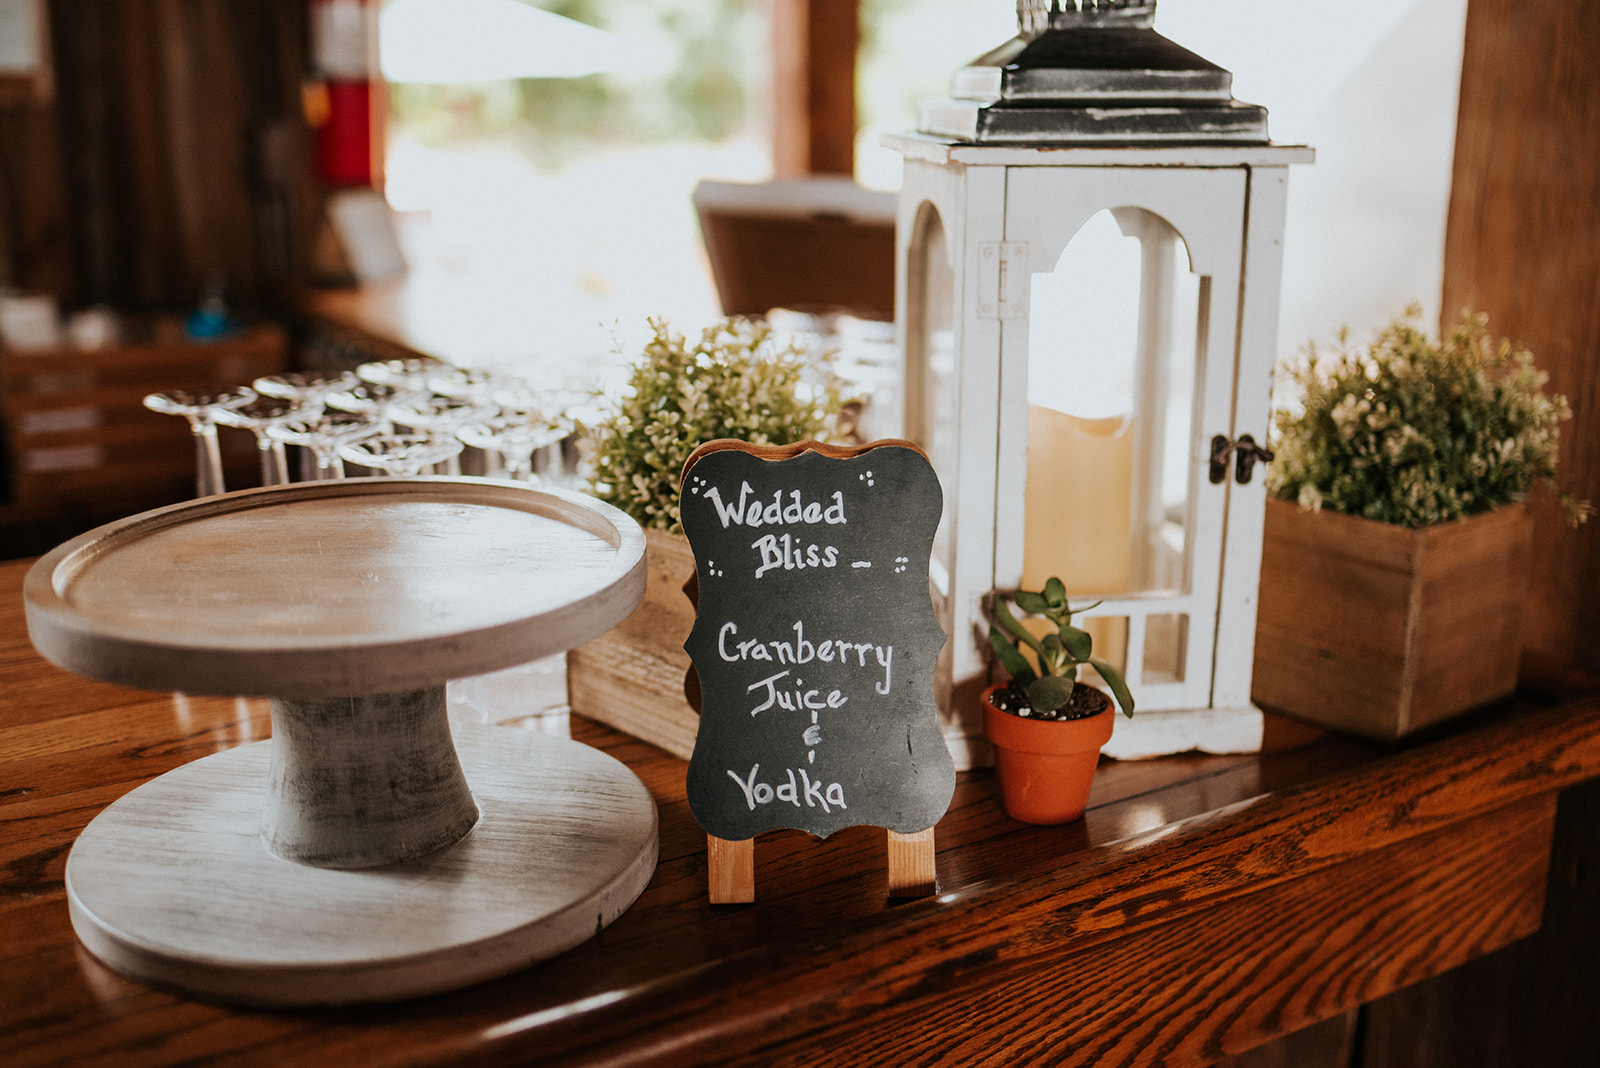 overthevineswisconsinwedding_1052.jpg